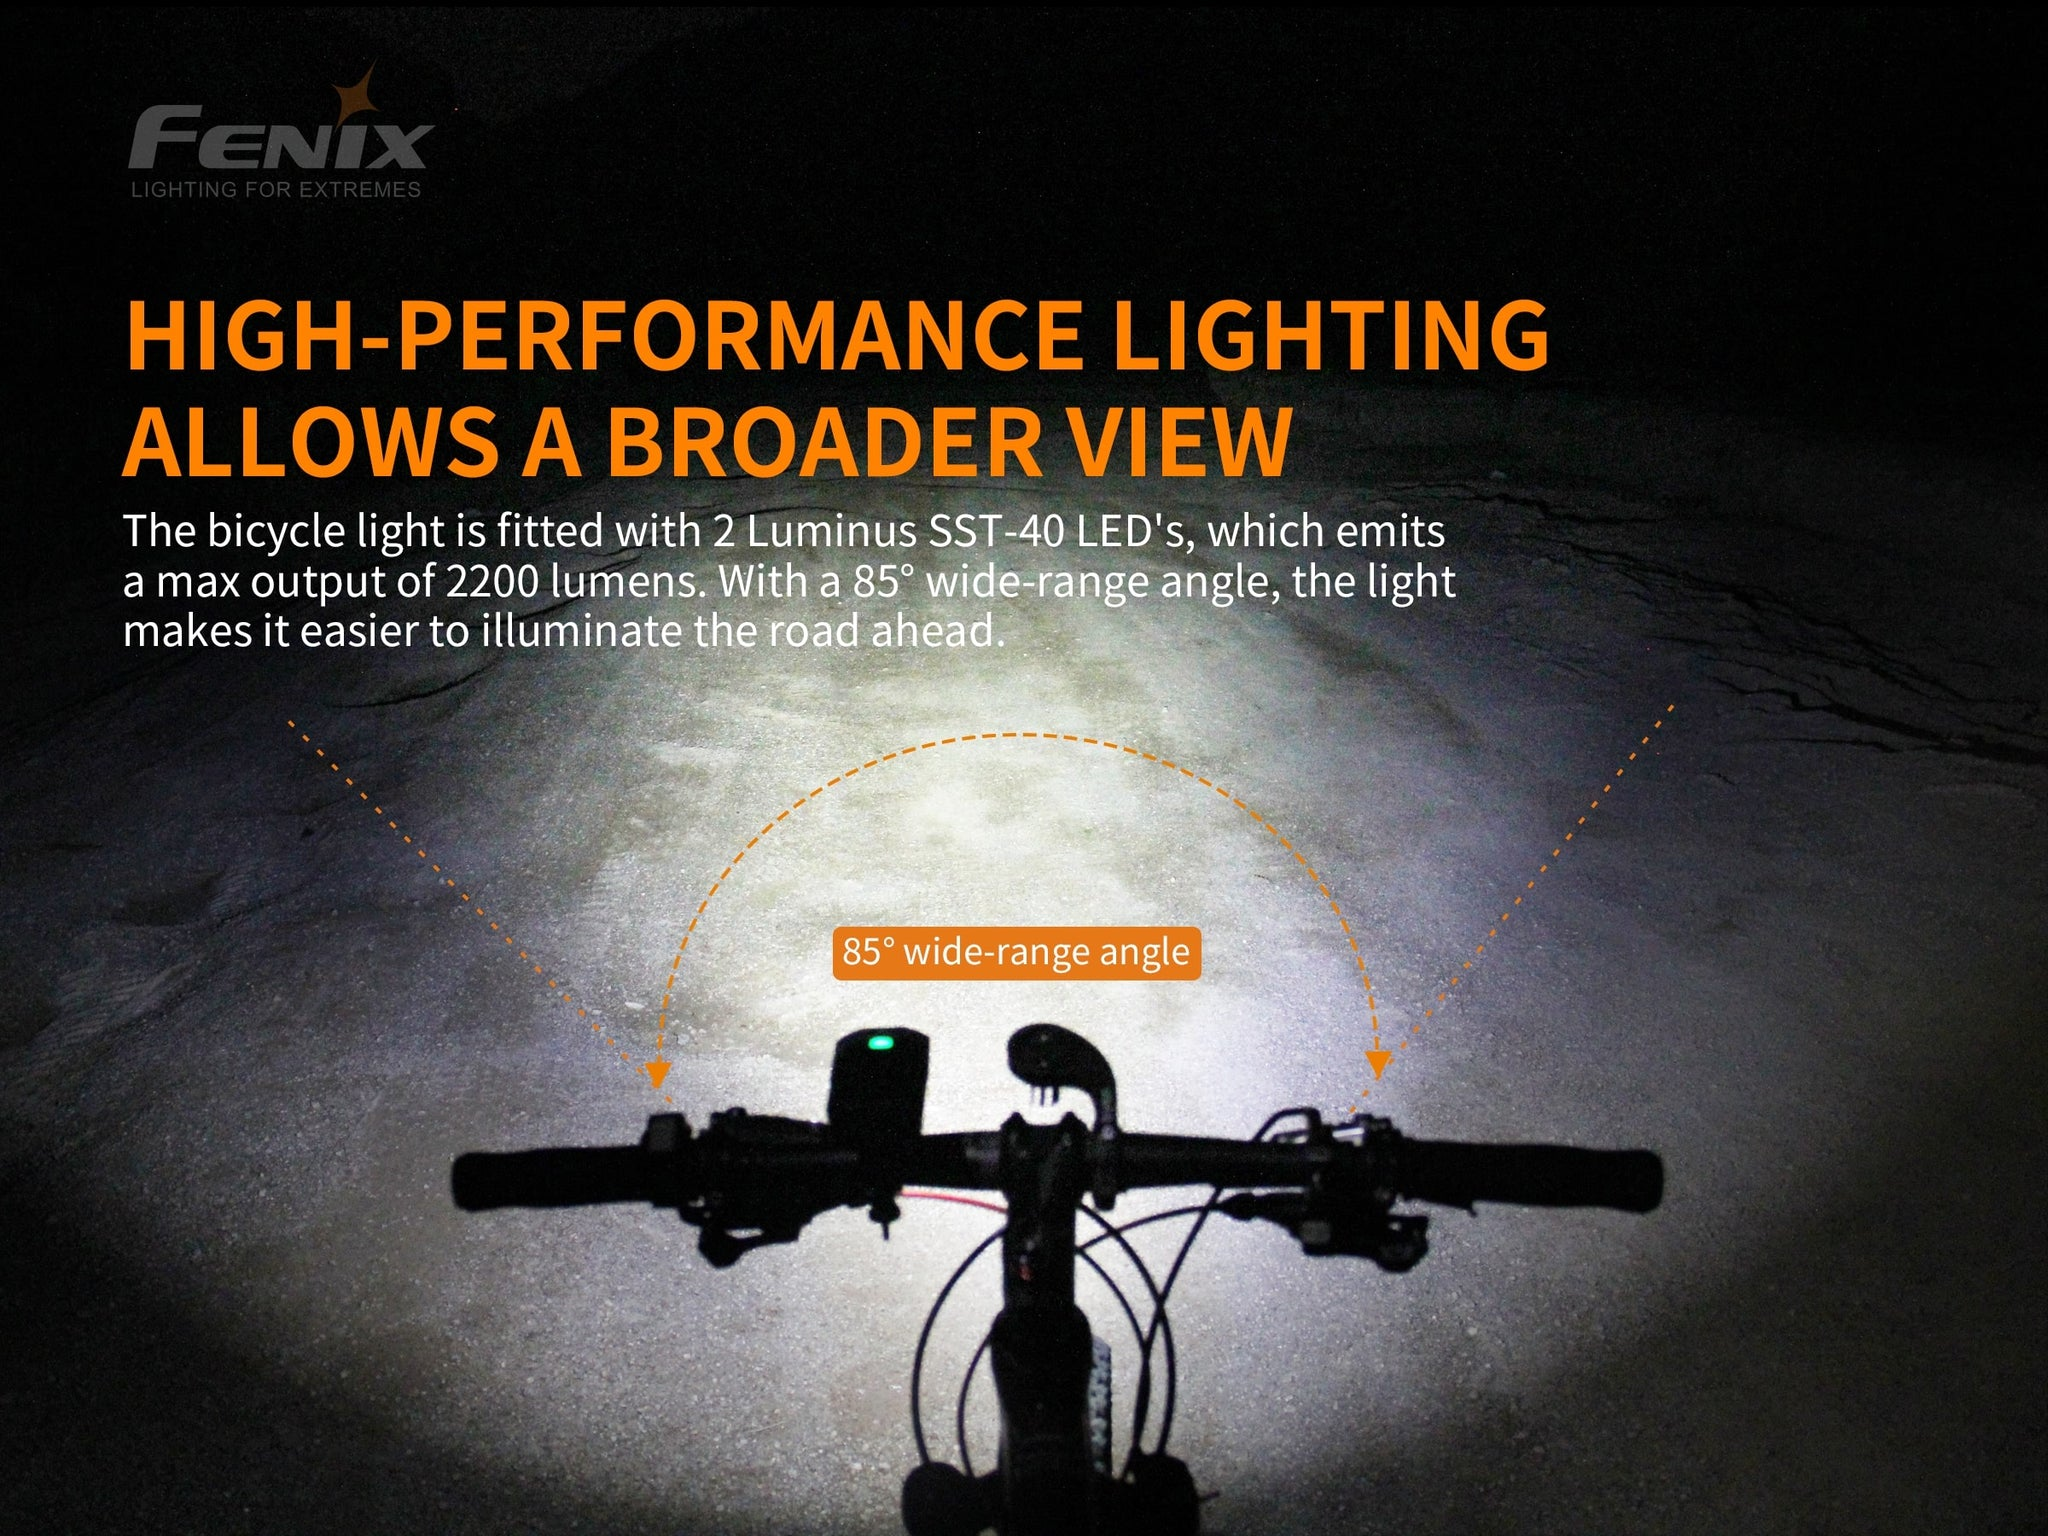 Fenix BC30 V2 LED Bike Light, Fenix BC30 Powerful Bicycle Light, Rechargeable Outdoor Bicycle light for Cyclist